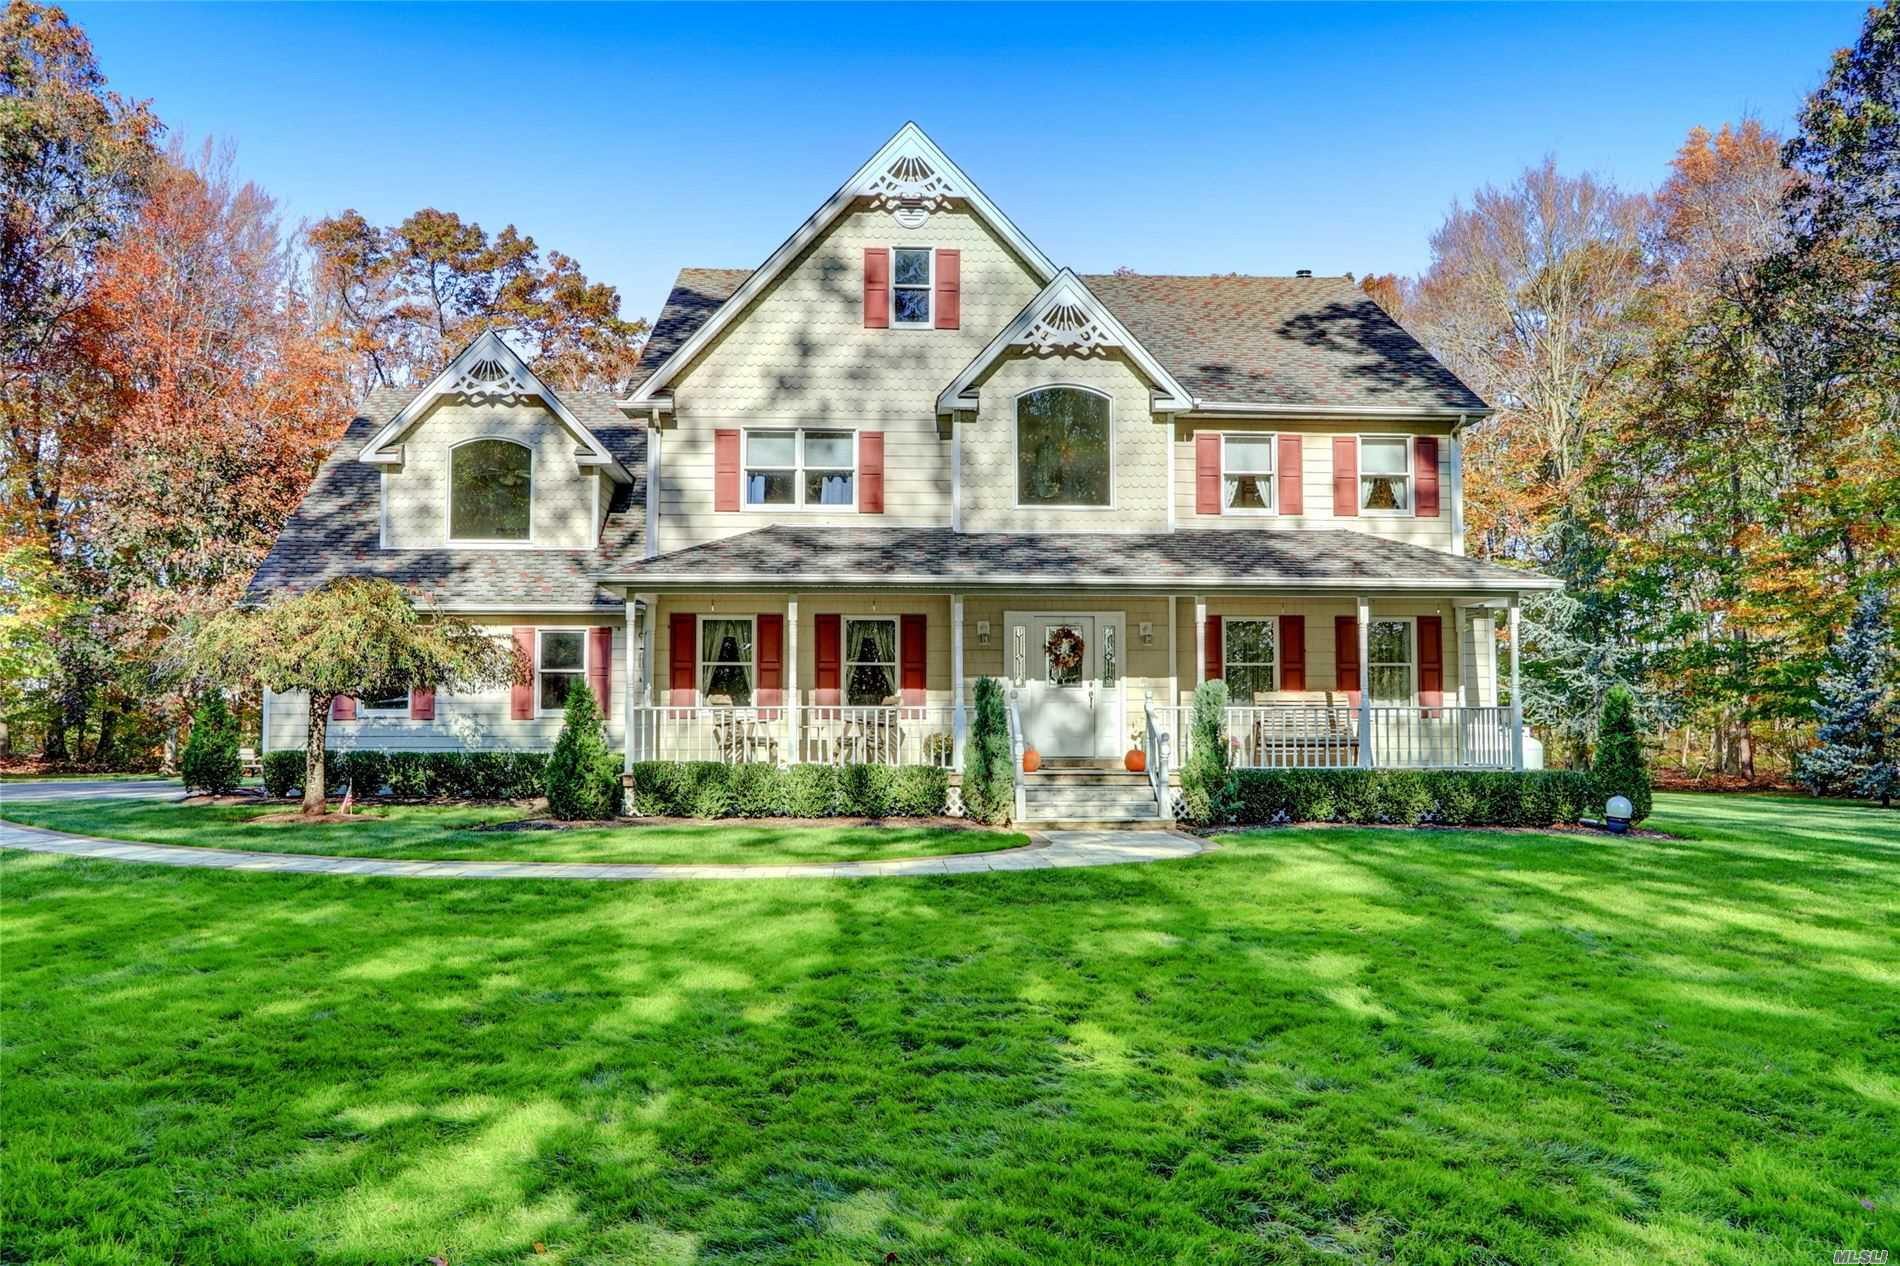 2405 Arbor Ln - Mattituck, New York